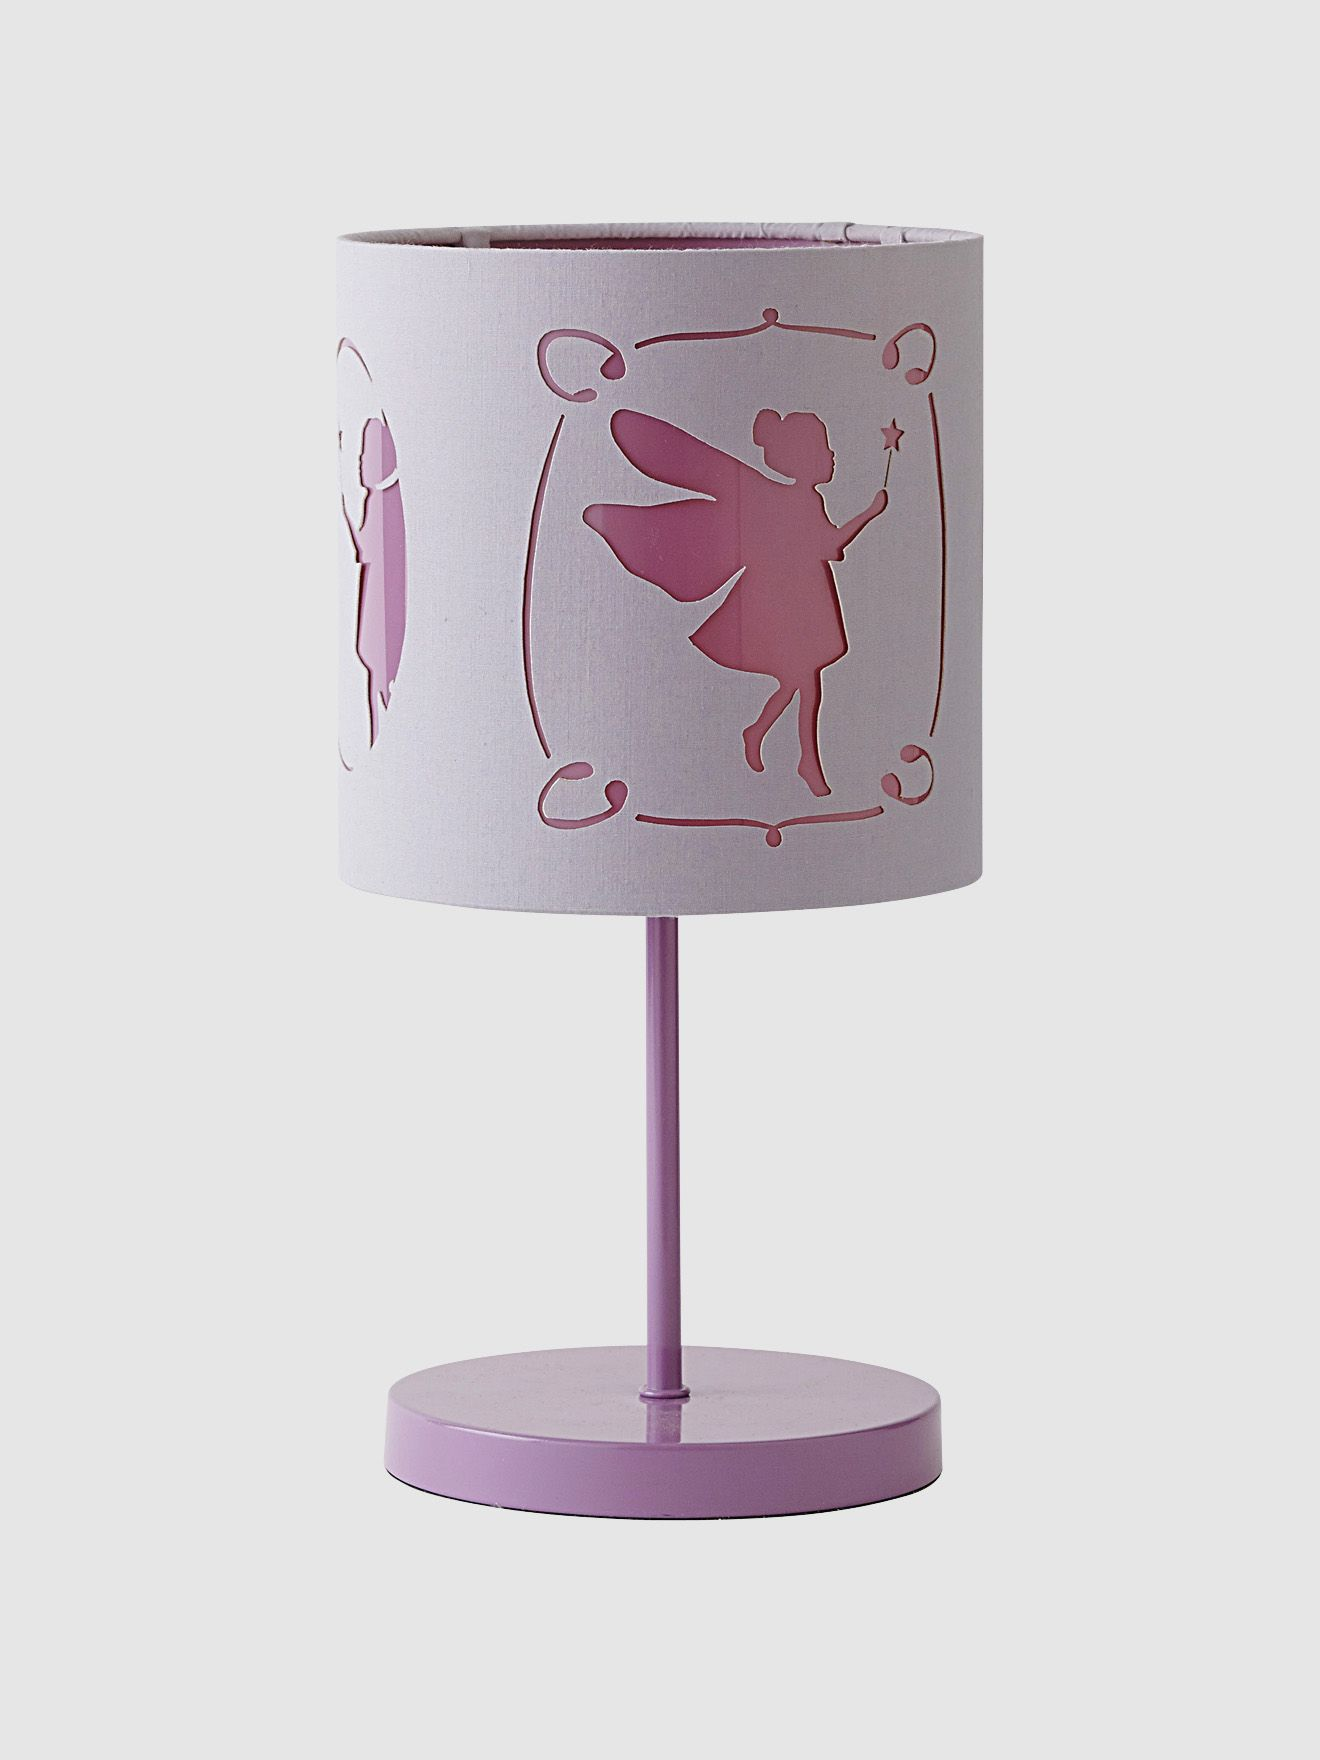 Lampe de chevet fille th me f e vertbaudet vertbaudet for Lampe de chevet fillette